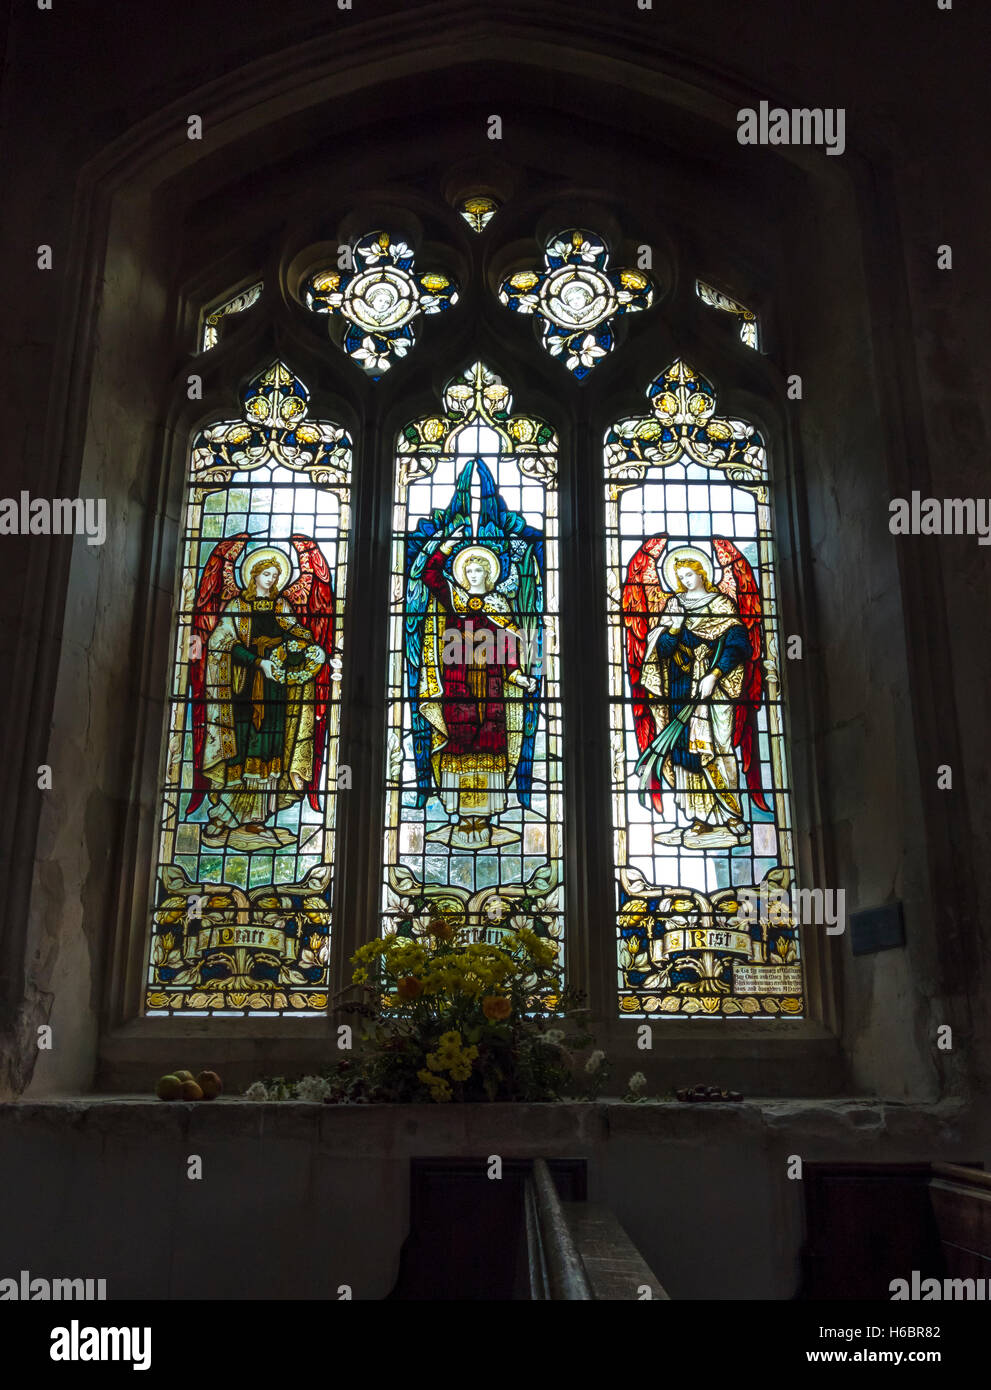 Stained glass window in St John the Baptist church Finchingfield Essex England 2016 Stock Photo